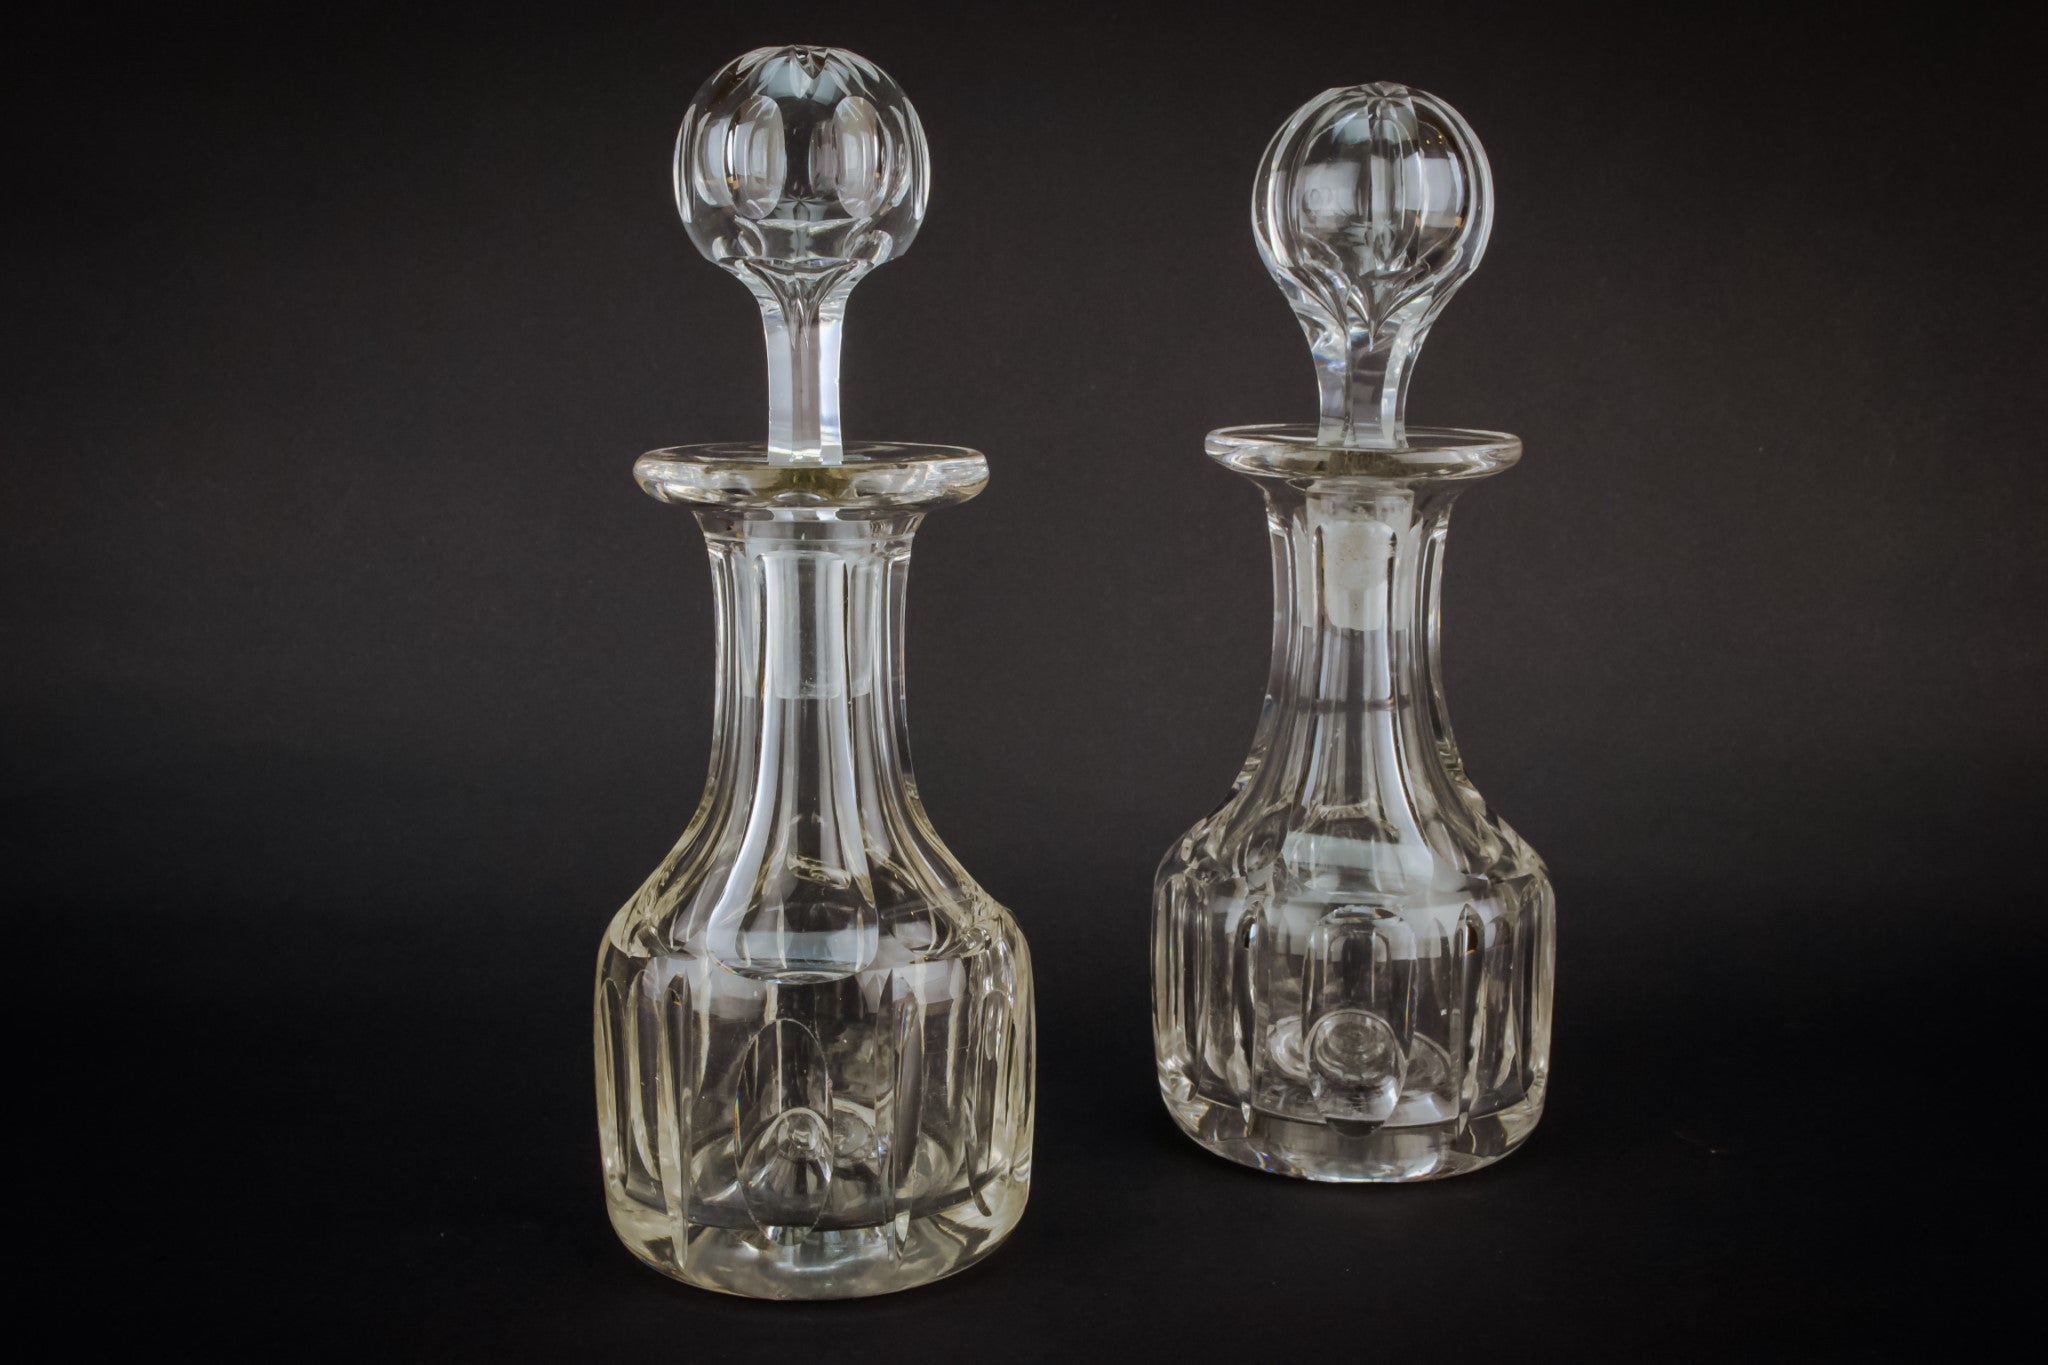 2 small glass decanters